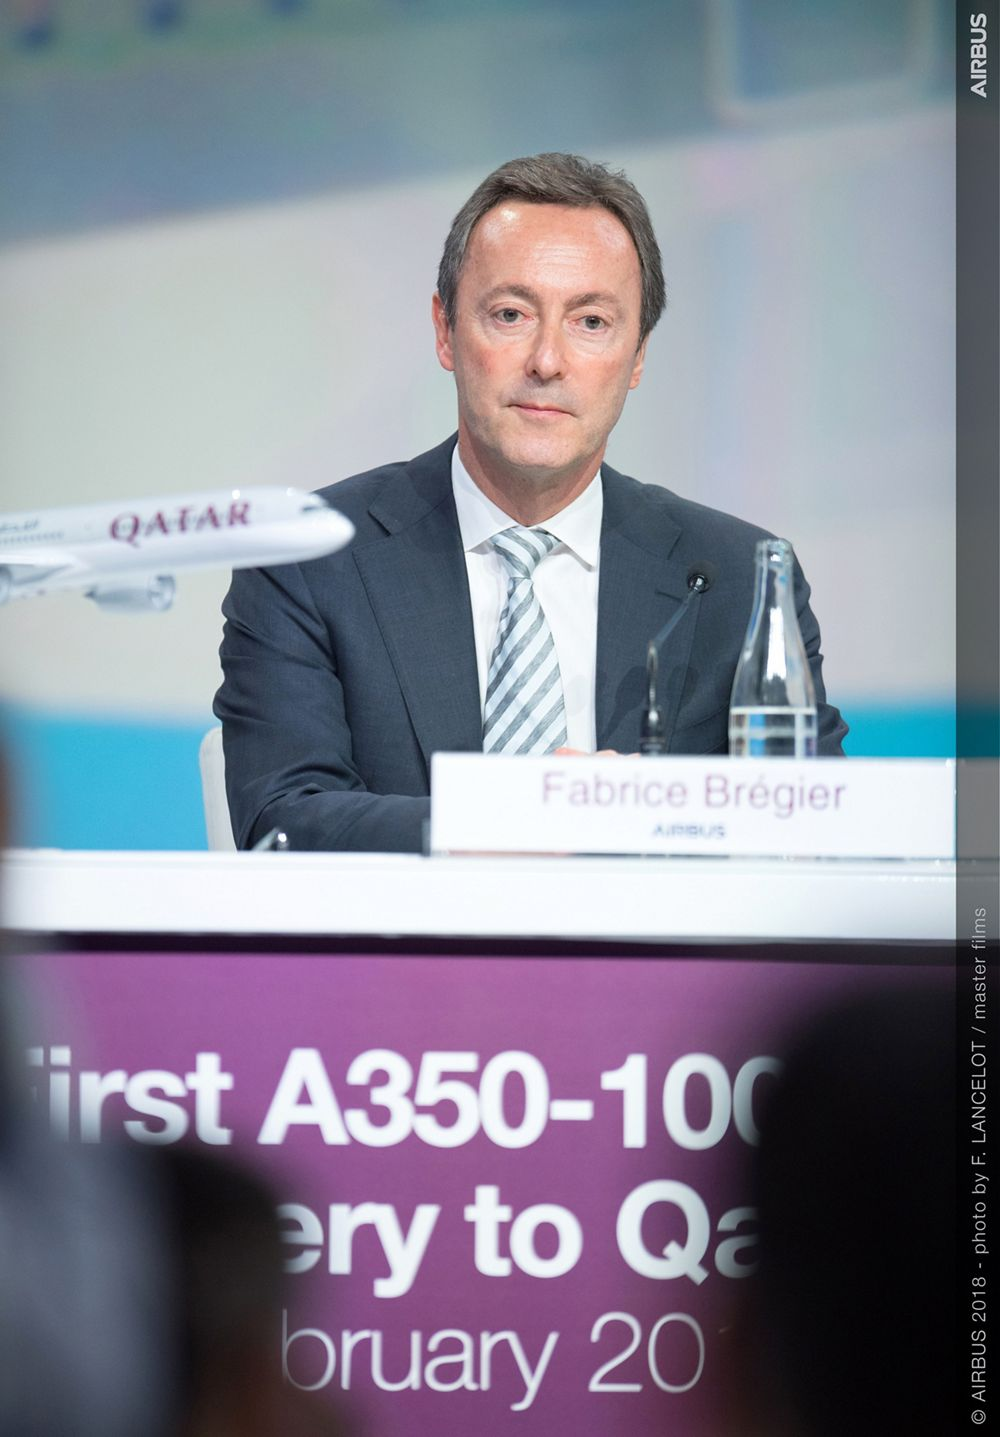 Airbus delivers first A350-1000 to Qatar Airways – 4